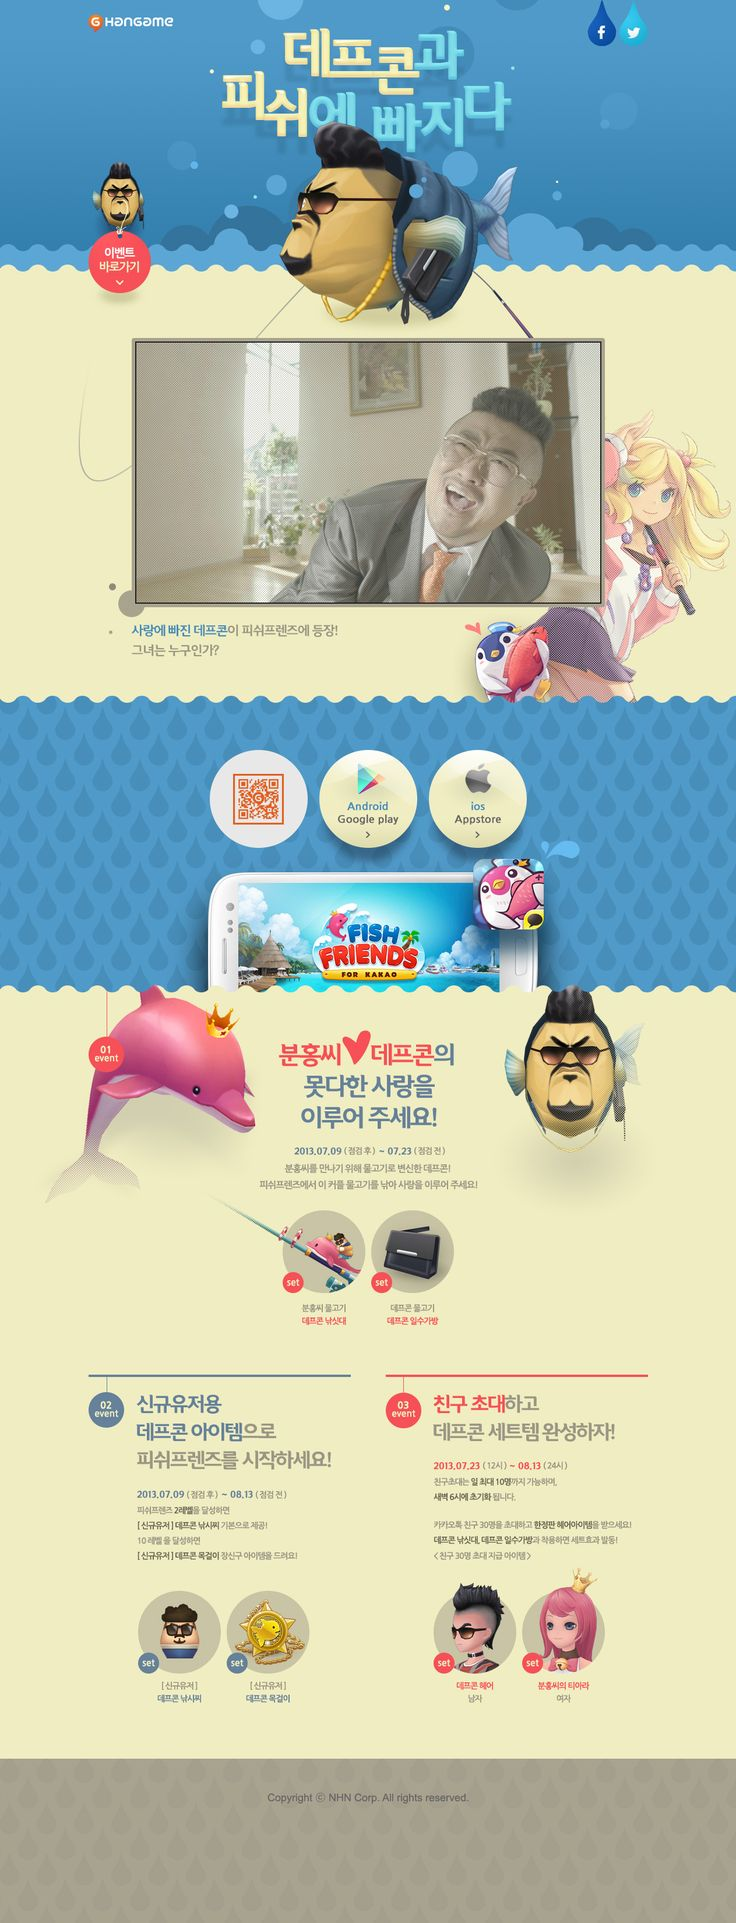 fish friends mobile game event http://brand.smart.hangame.com/promotion/fiFriendsDefcon.nhn